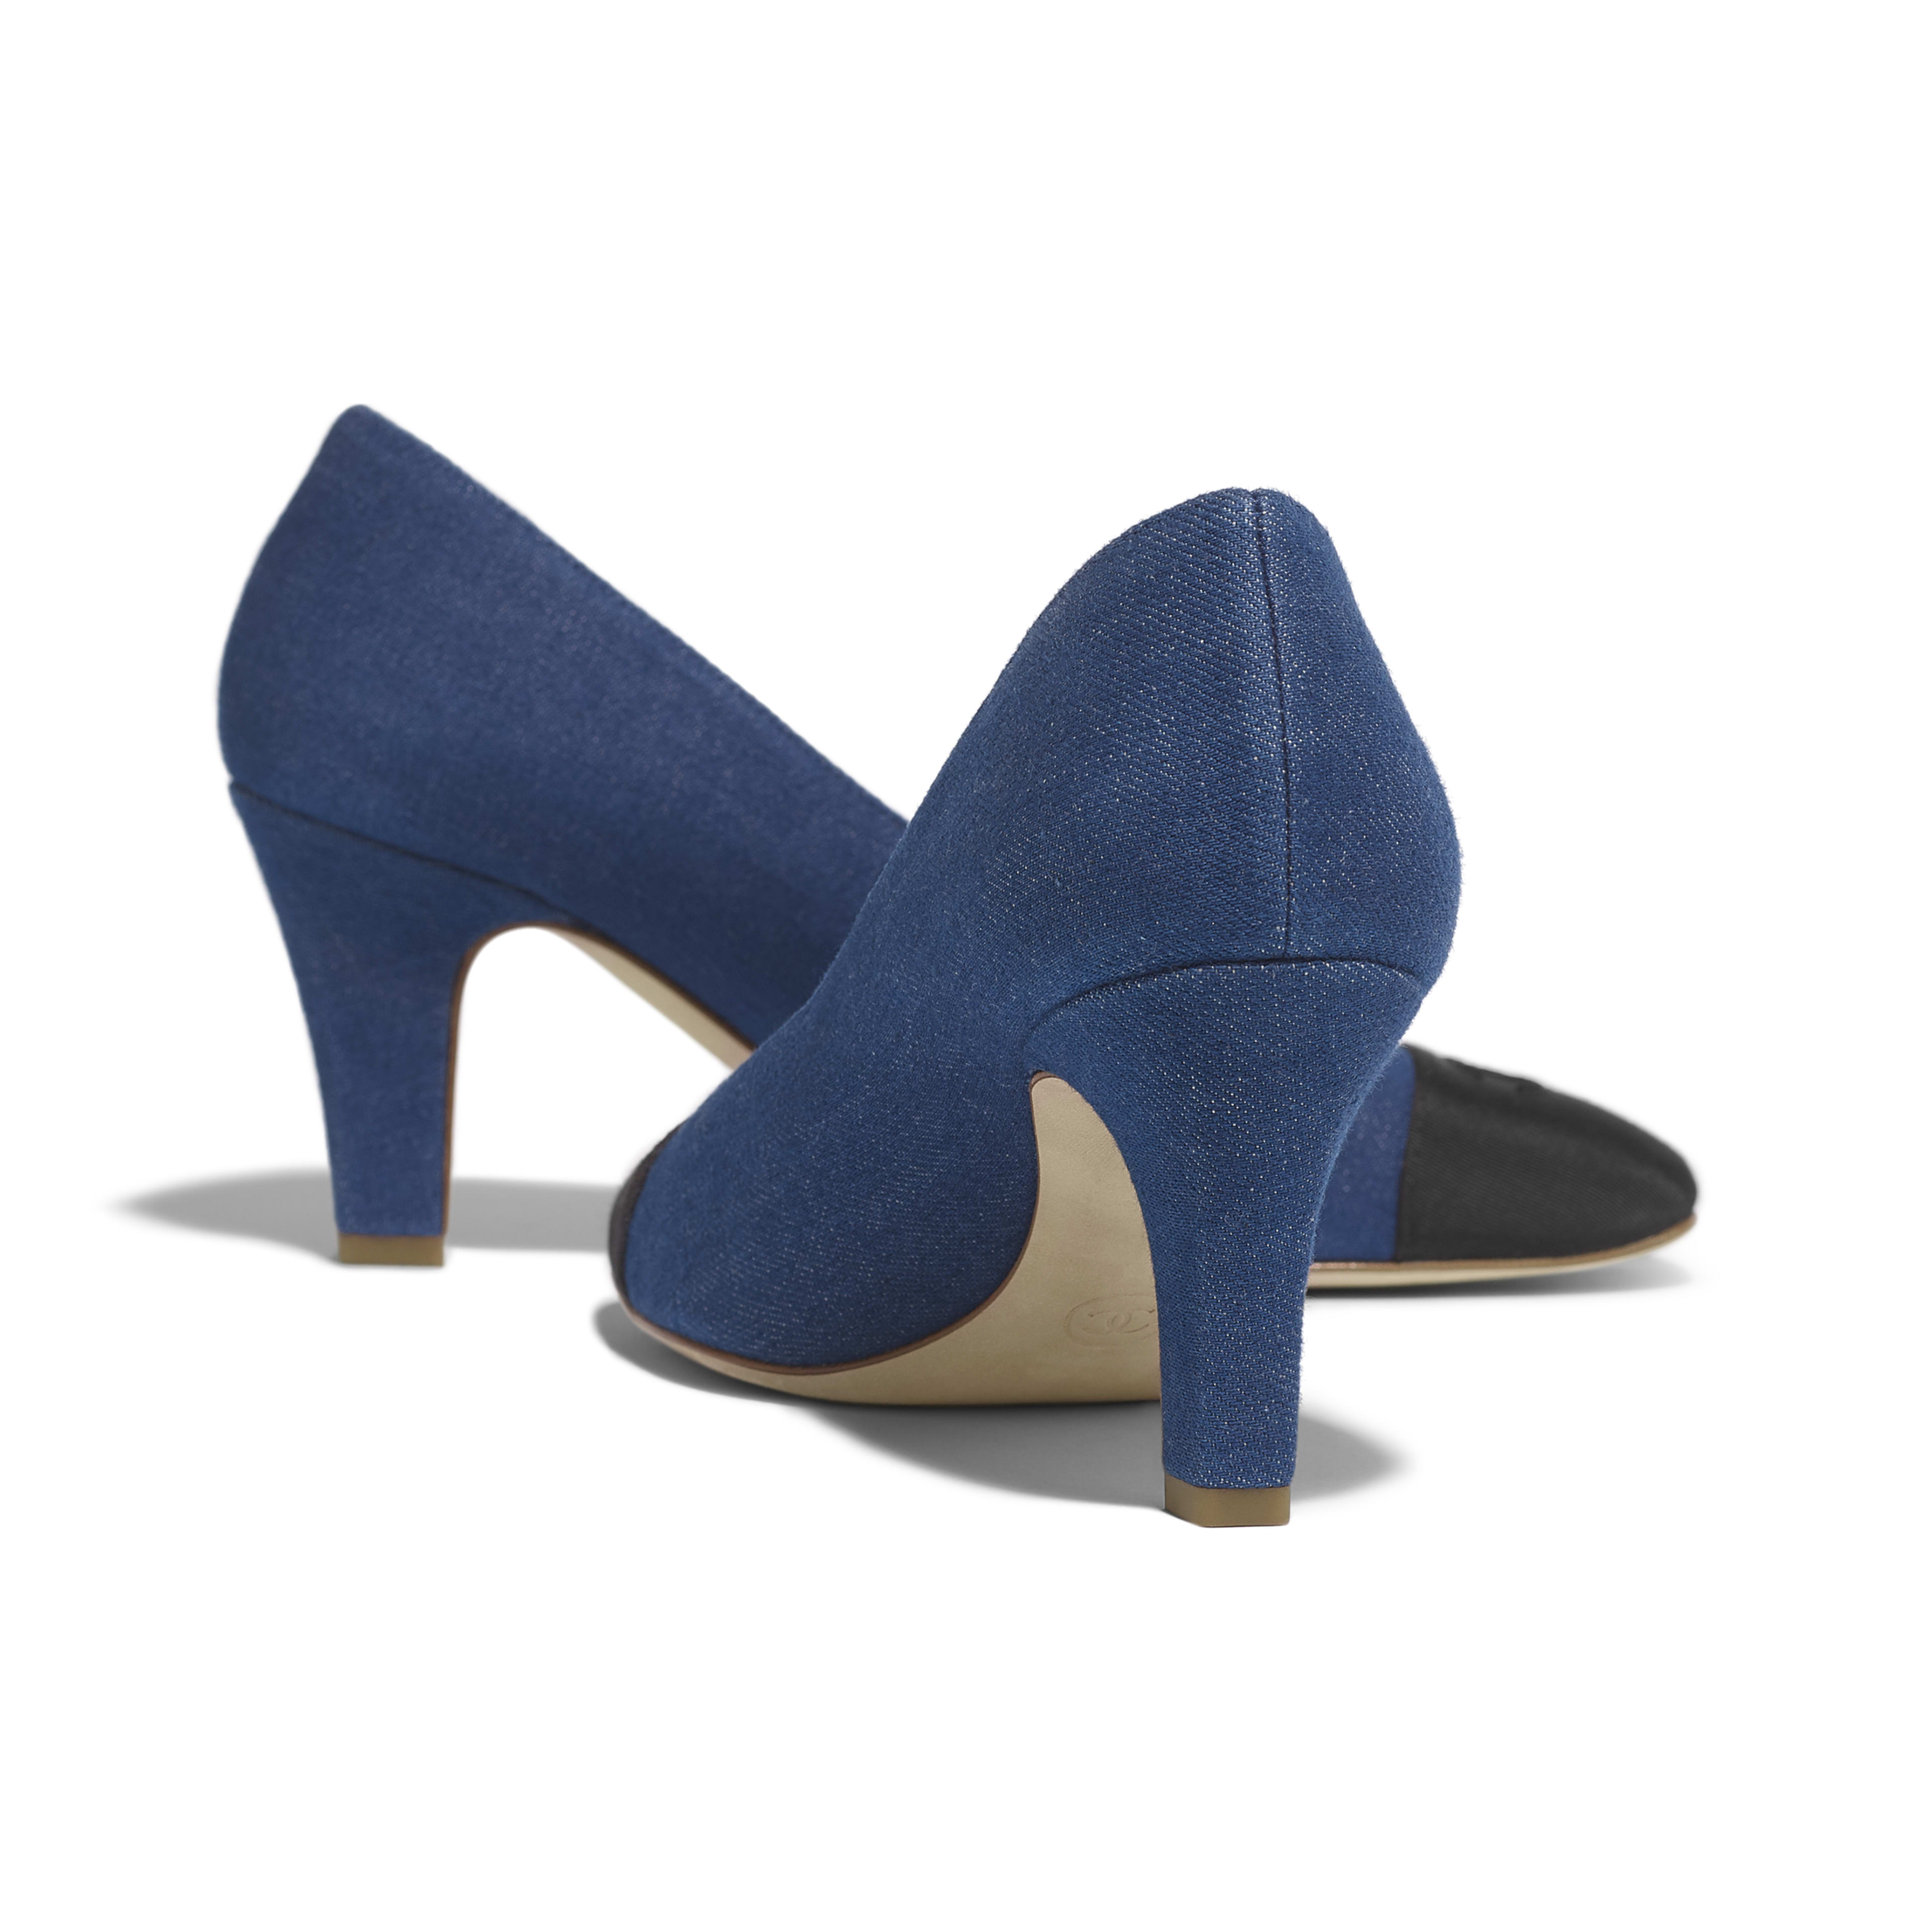 Pumps - Blue & Black - Fabric & Grosgrain - Other view - see full sized version